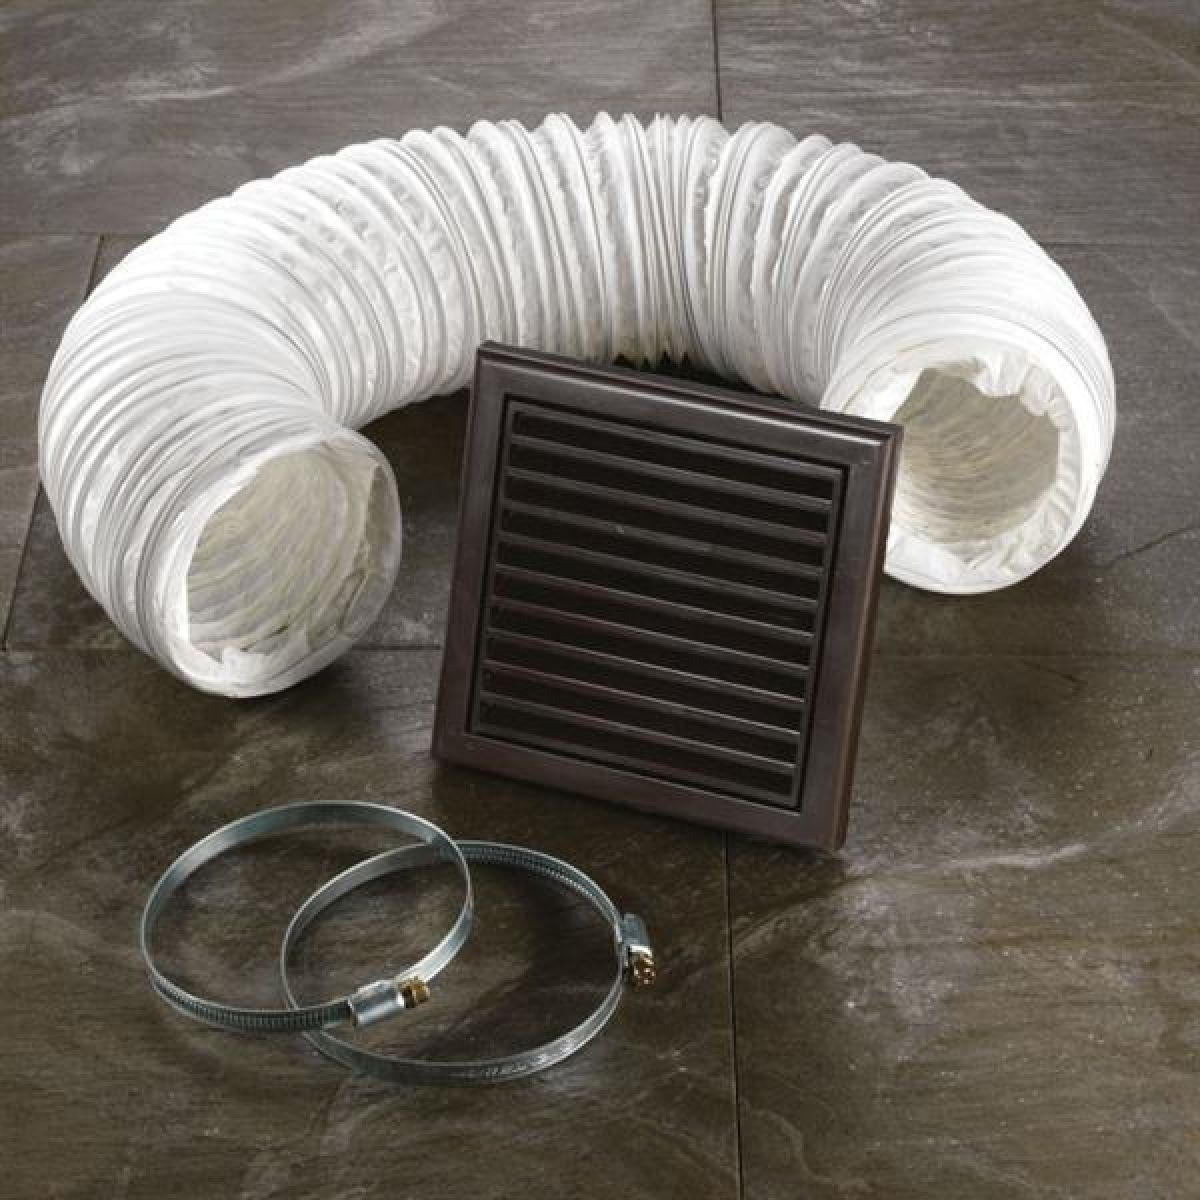 HiB Wetroom Extractor Fan Accessory Kit in Brown